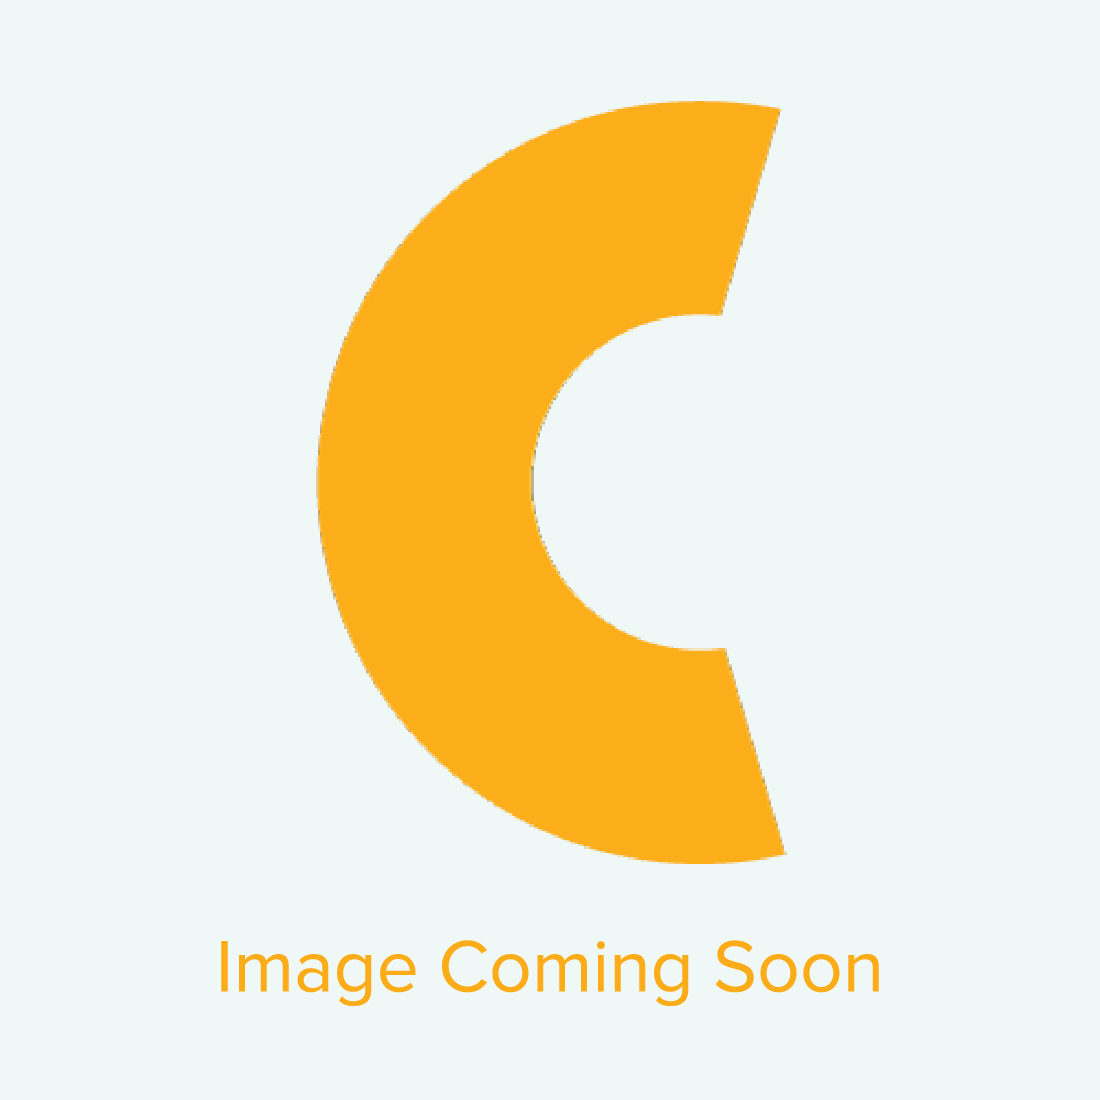 ColorPrint Soft Opaque Printable Heat Transfer Vinyl